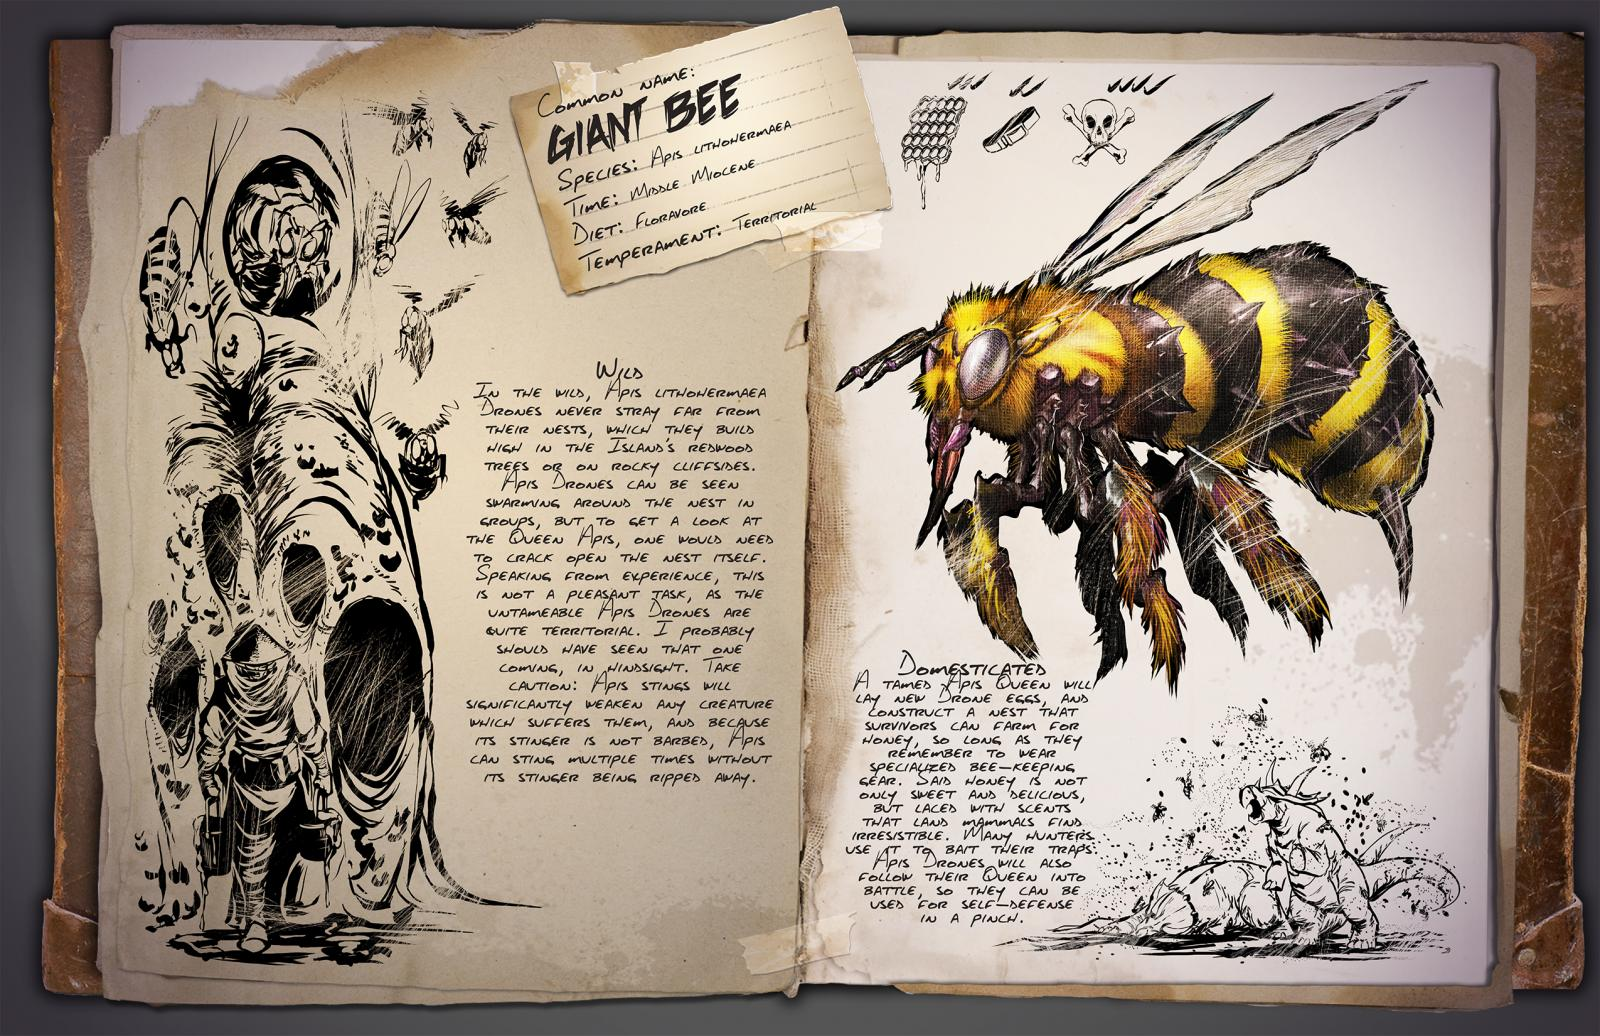 Giant Bee Honey Ark